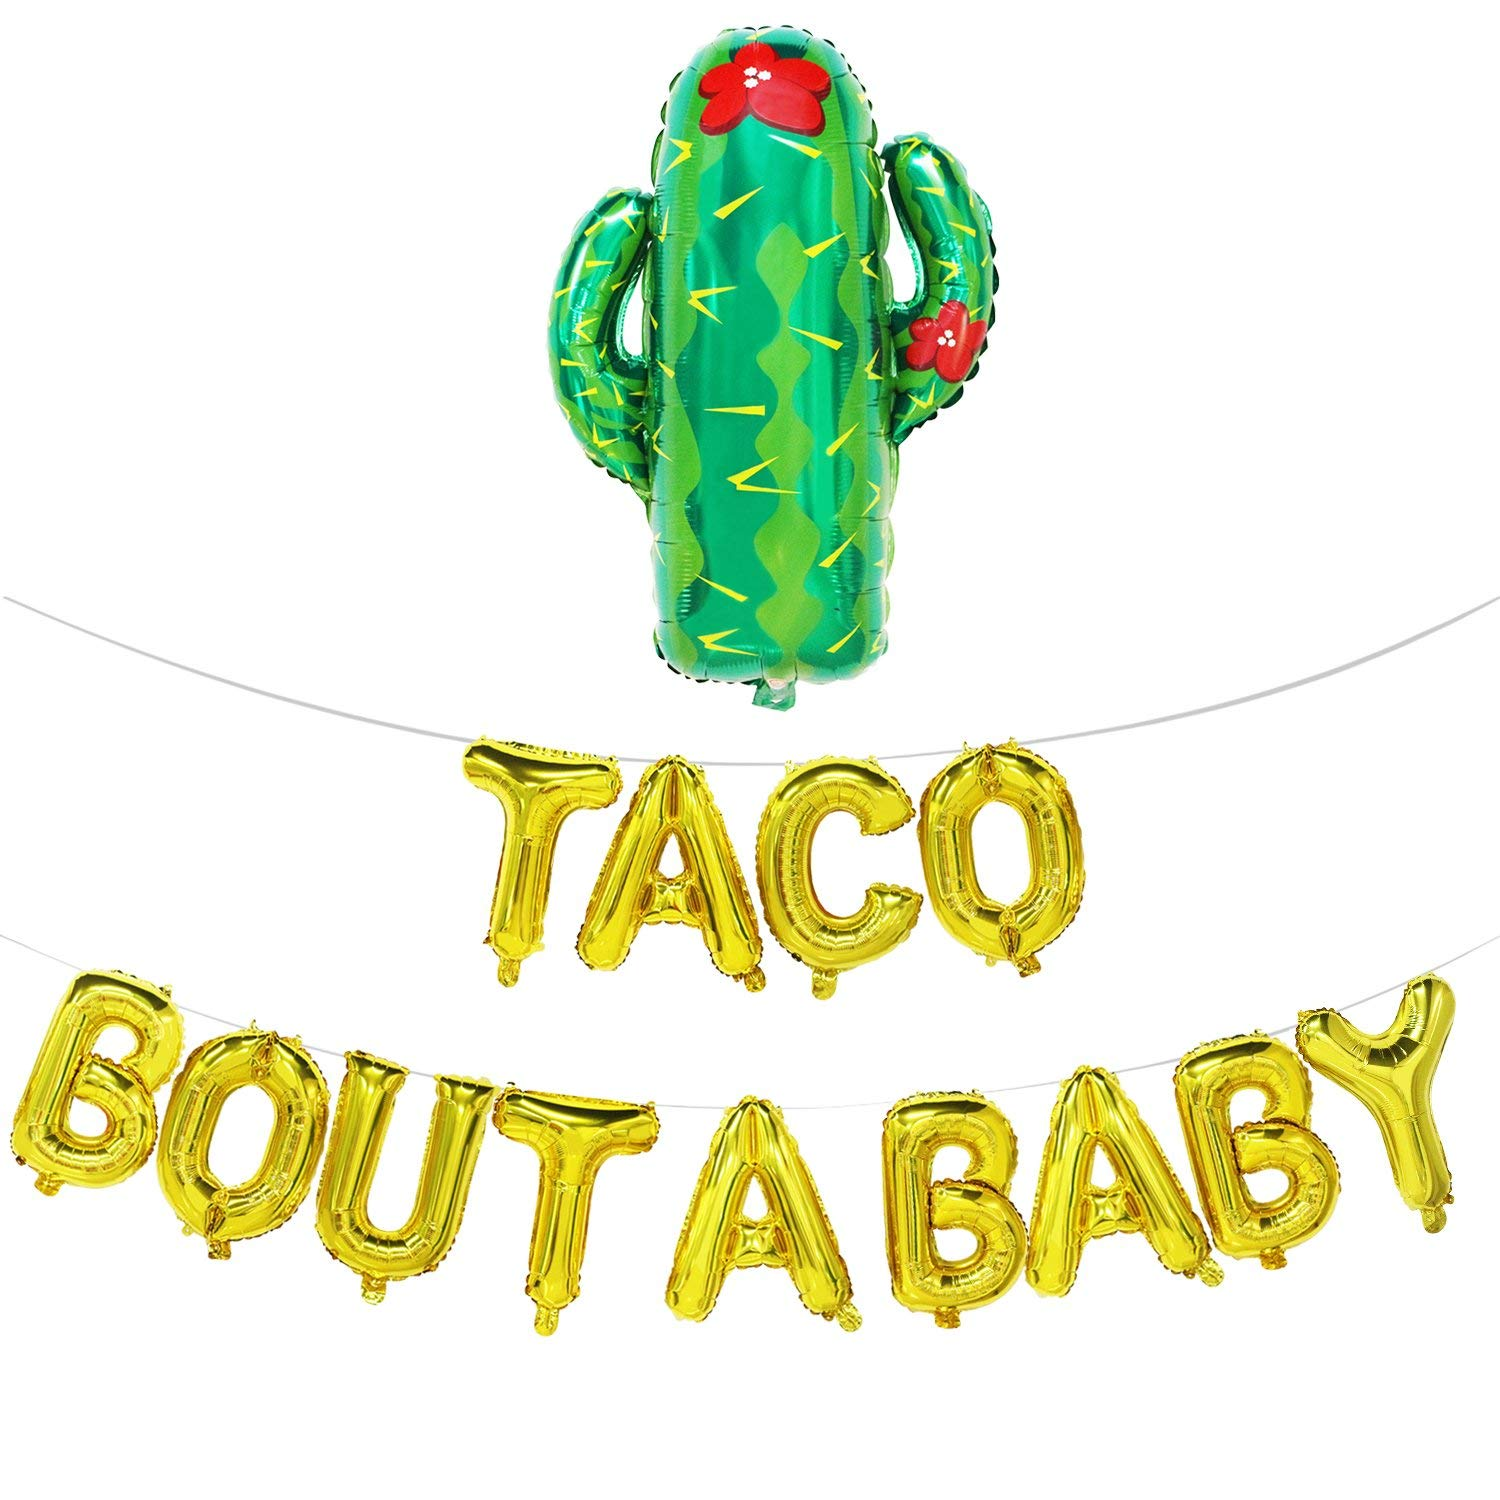 Taco Bout A Baby Balloons Letters with Cactus | Fiesta Theme Baby Shower Decorations | Baby Shower Banner | Pregnancy Announcement, Baby Announcement, Gender Reveal Party Supplies | Gold, 16inch